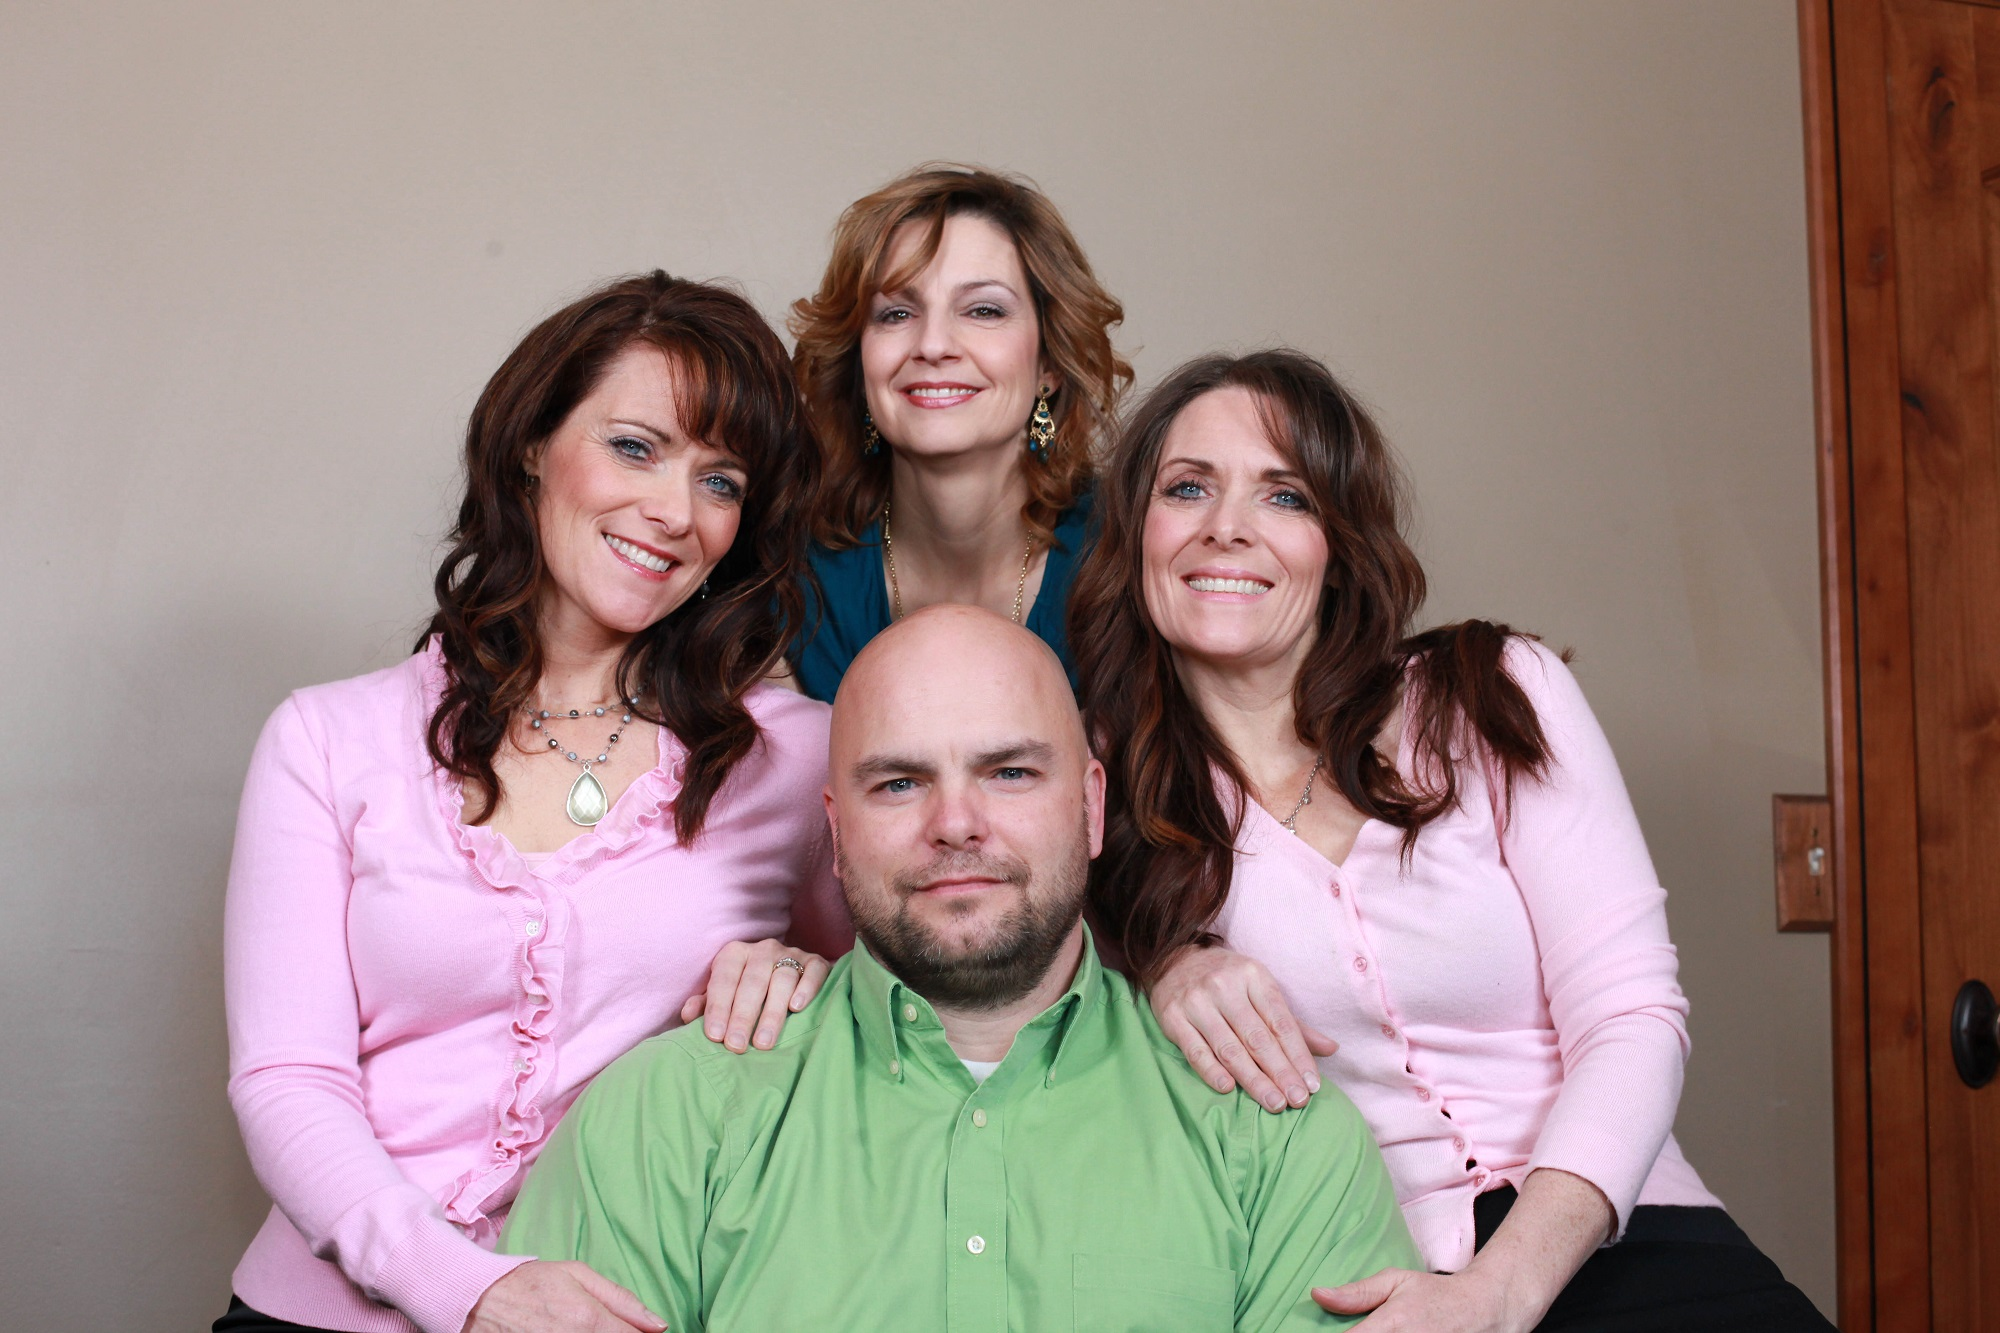 Joe Darger, 42, poses for a picture with his three wives Valerie, 41, Alina, 42 and Vicki, 41 on March 04, 2012